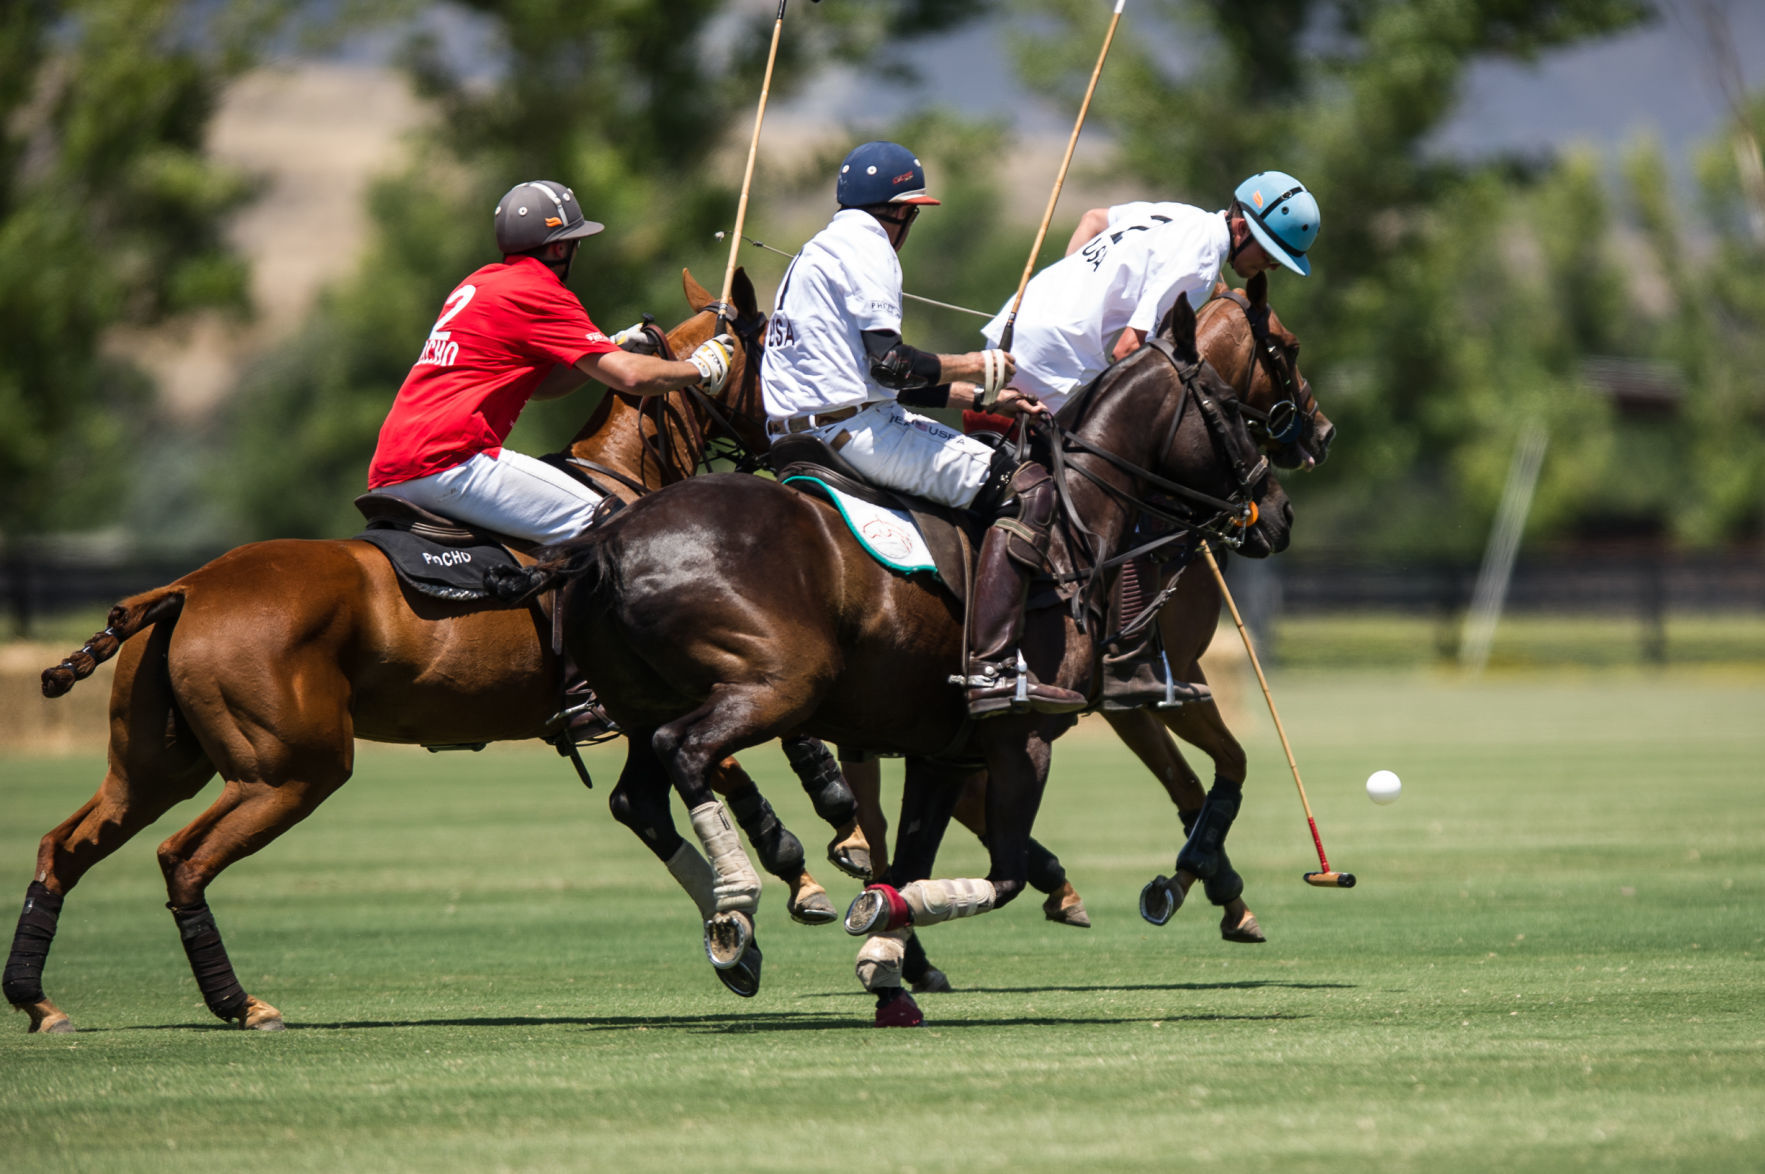 Discussion on this topic: Yesha Camile (2009), sue-sally-hale-legendary-american-polo-pioneer/